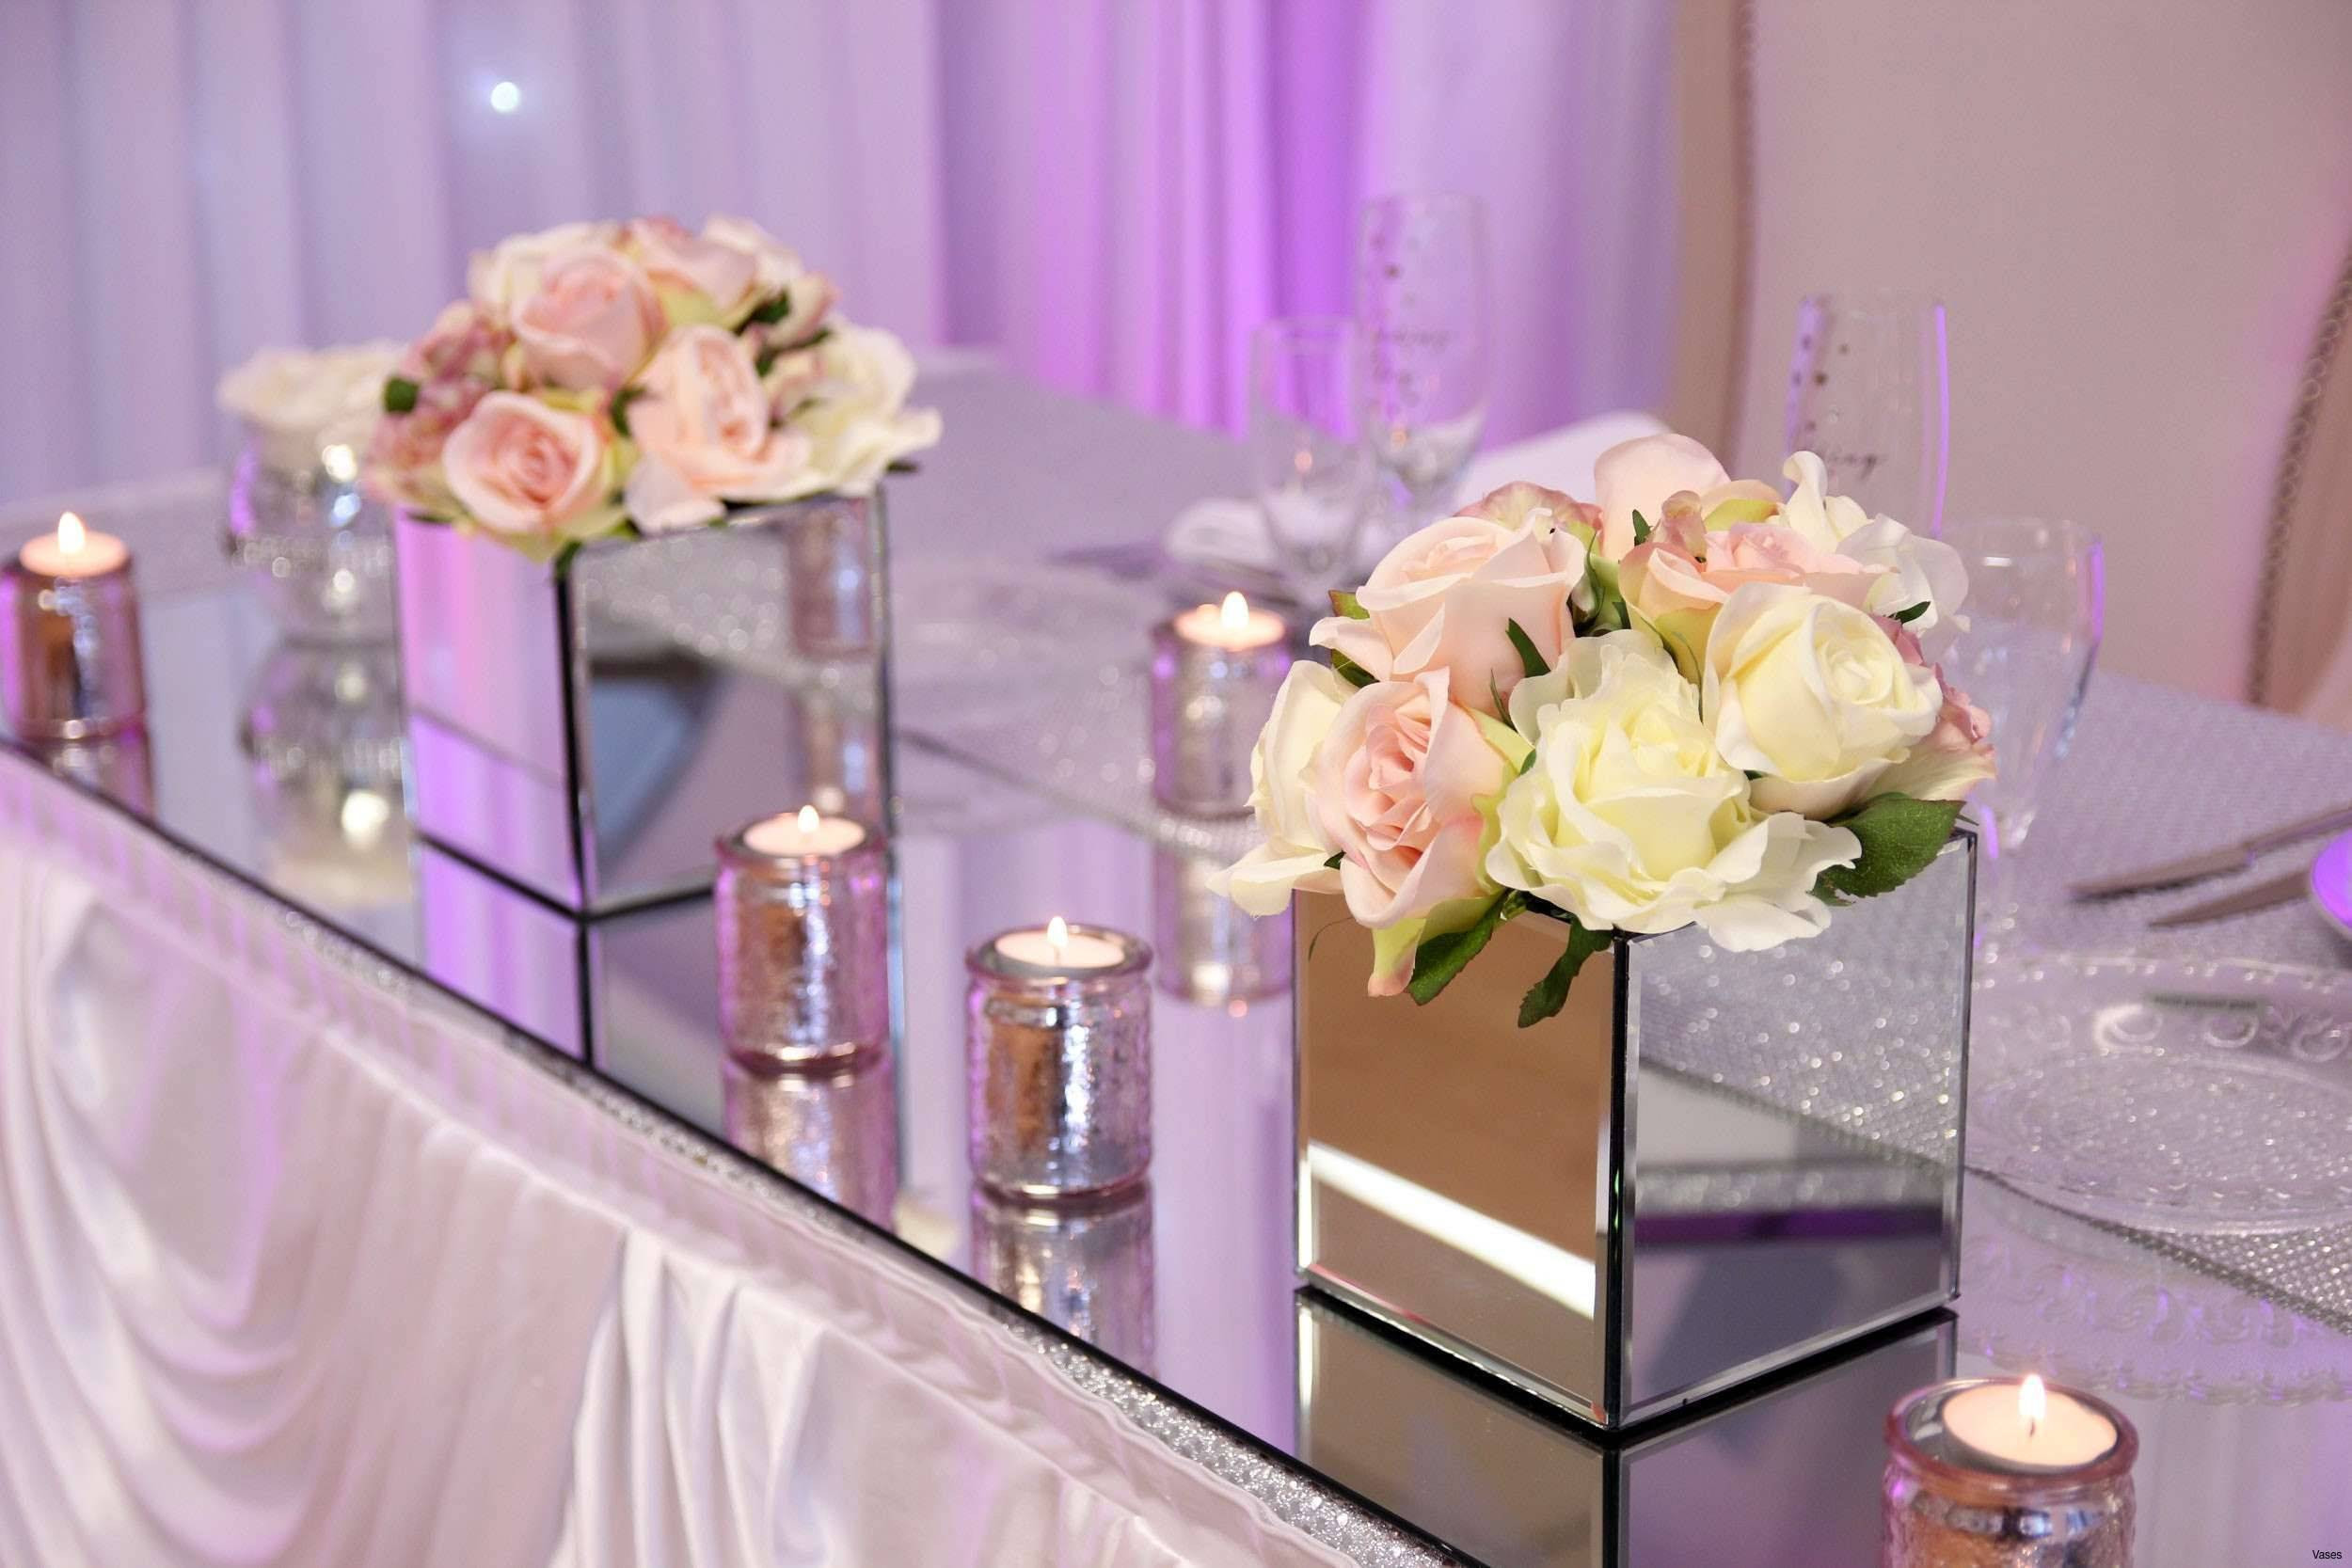 6 square vase of mirrored square vase 3h vases mirror table decorationi 0d weddings pertaining to mirrored square vase 3h vases mirror table decorationi 0d weddings ideas of lighted outdoor halloween decorations